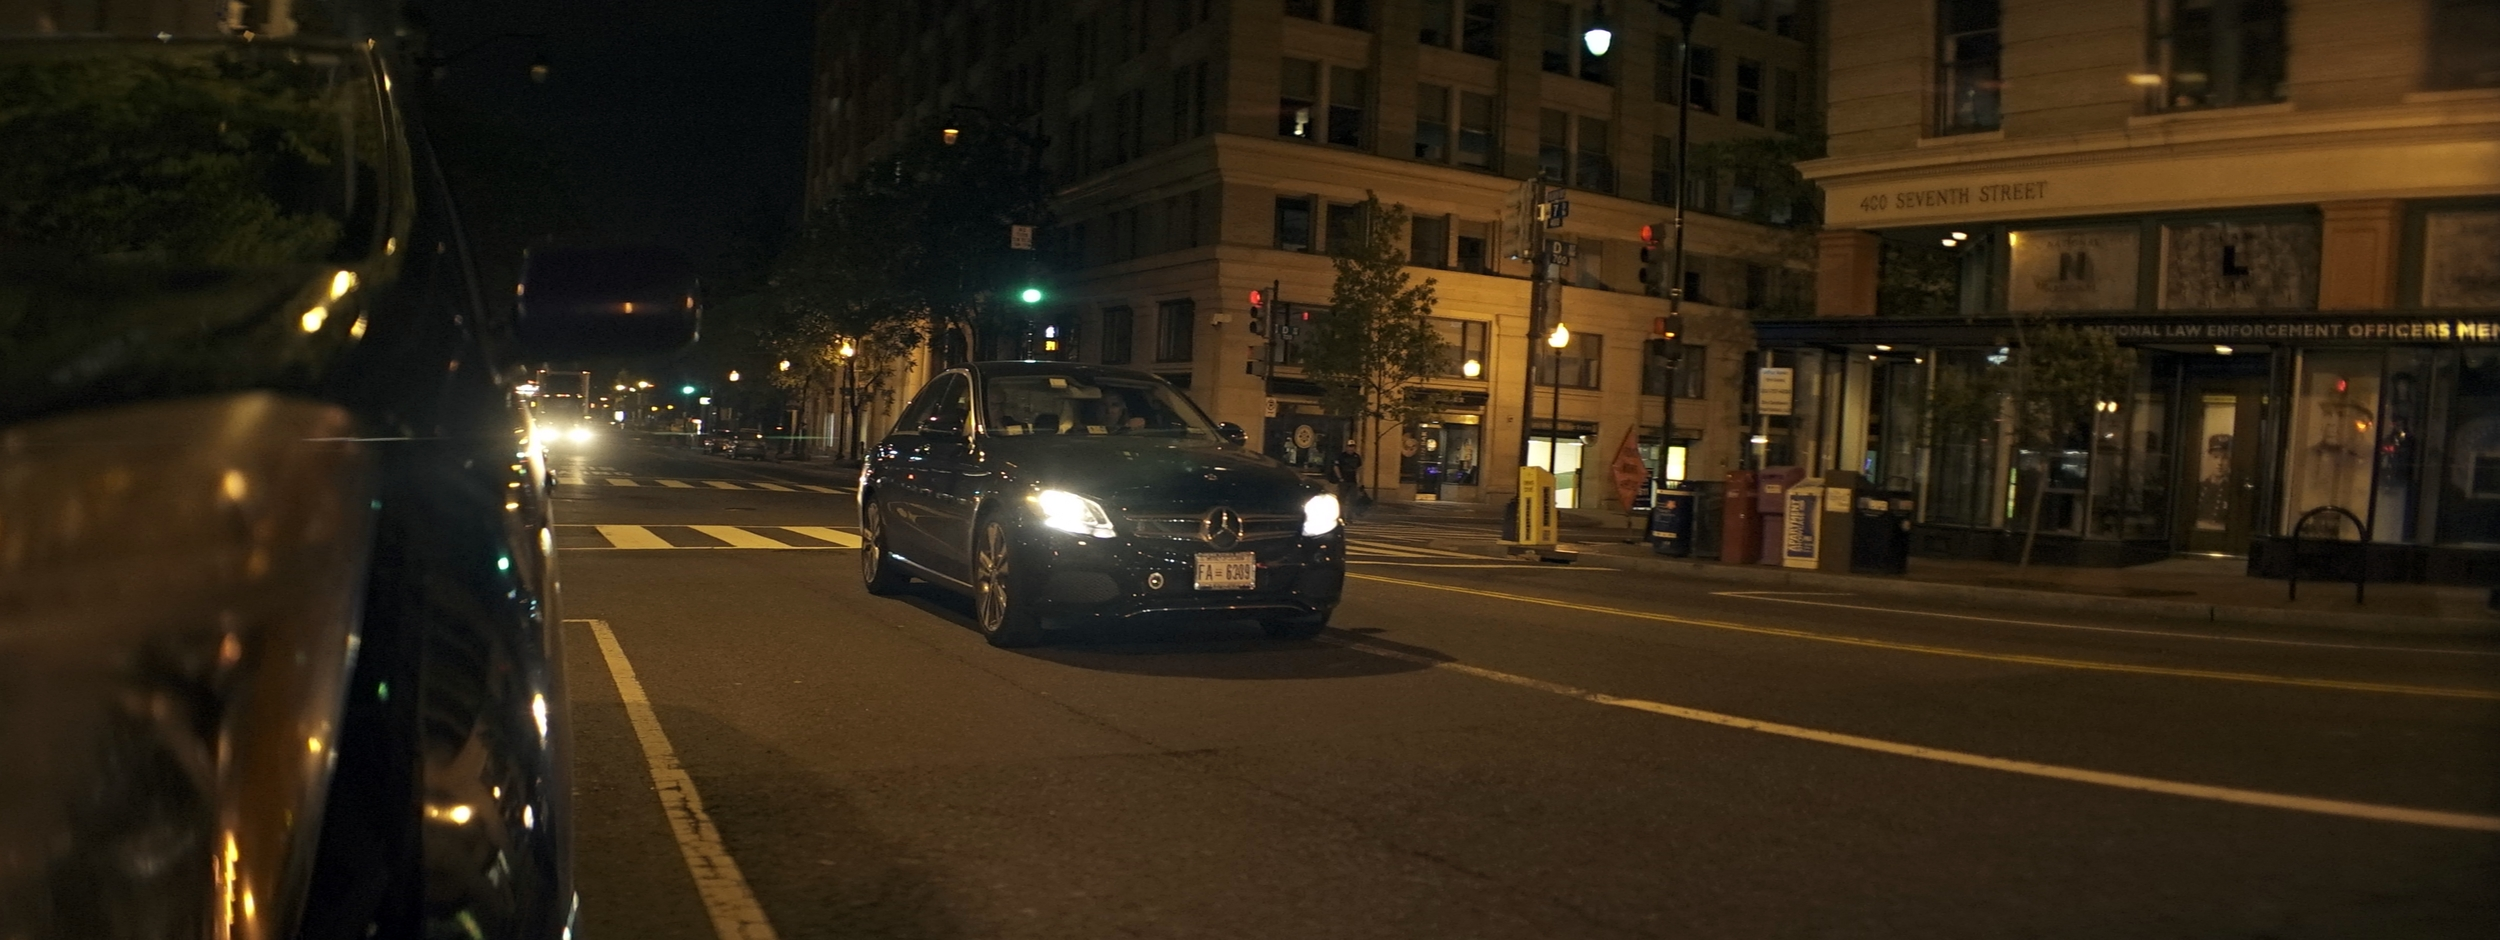 Elite 24.5mm anamorphic | Washington D.C. - A subtle flare can be seen here along the left third of the frame, triggered by a truck approximately 500ft down the street. Notice no flare from the headlights of the Mercedes because it is not on axis with the lens. Notice also the small green flare produced by the trafic signal above the Mercedes. Image captured wide open at T2.1. Photo by Keith Nickoson.